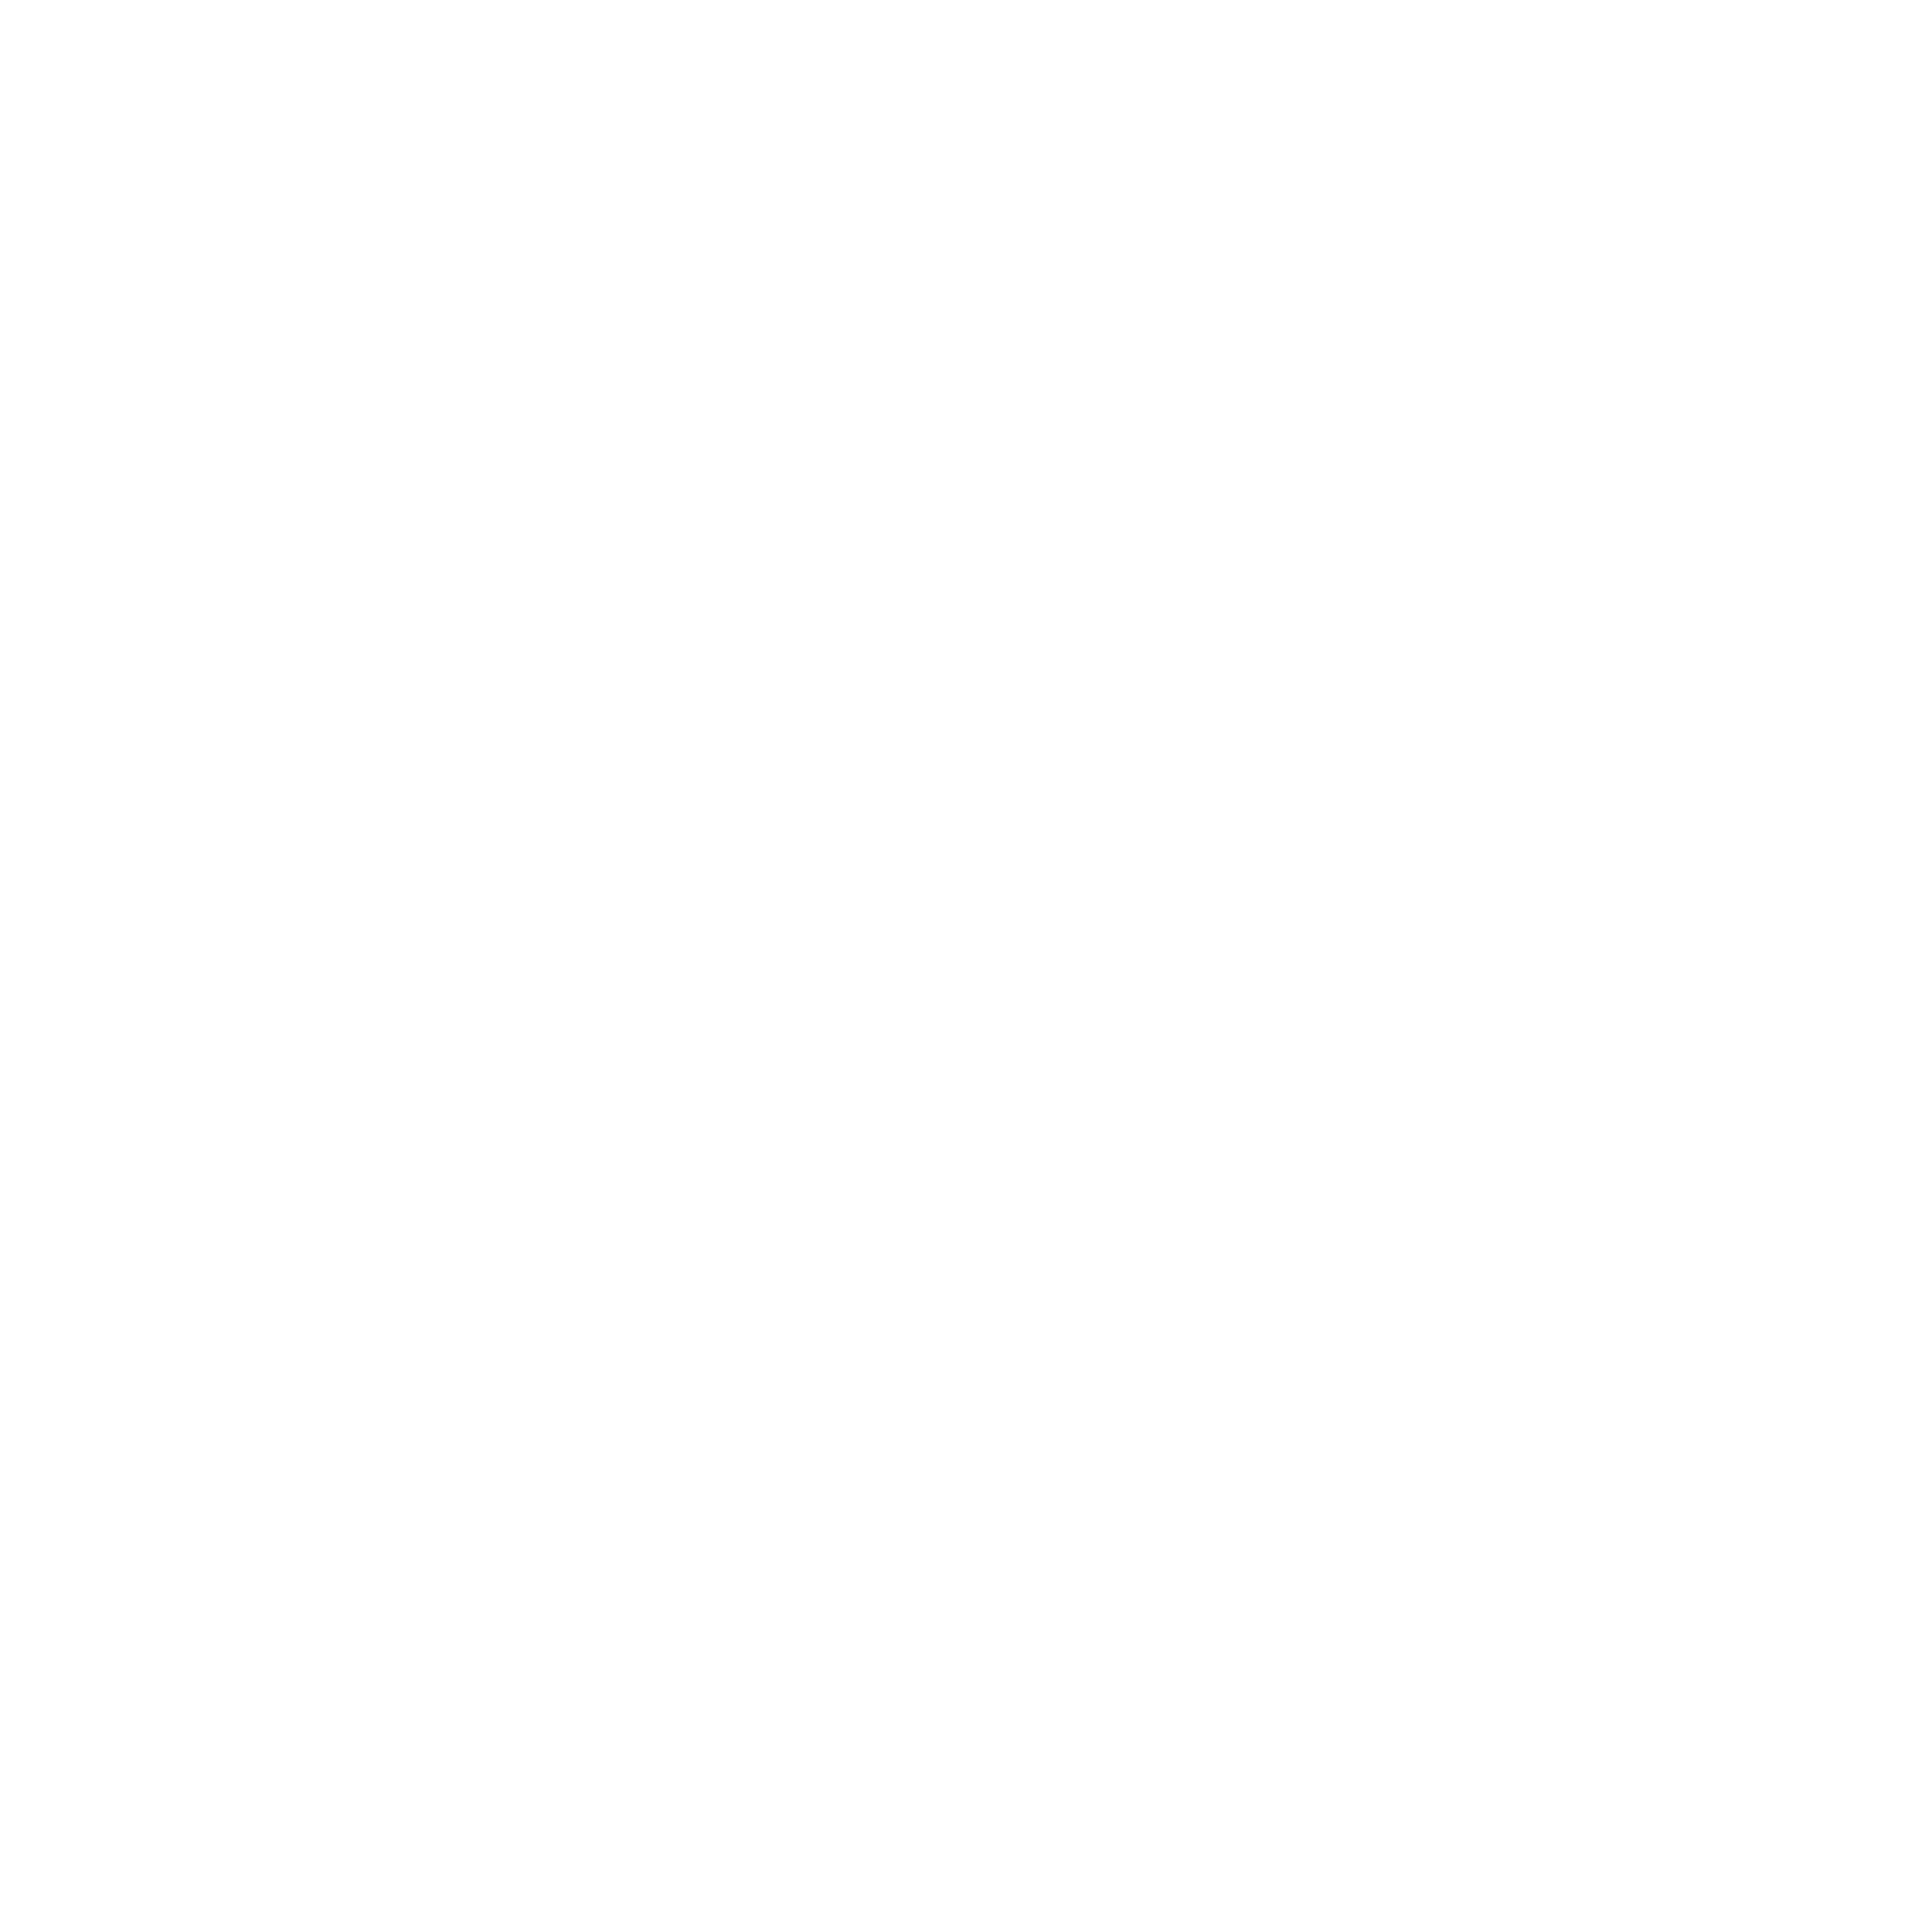 New Roc Dental